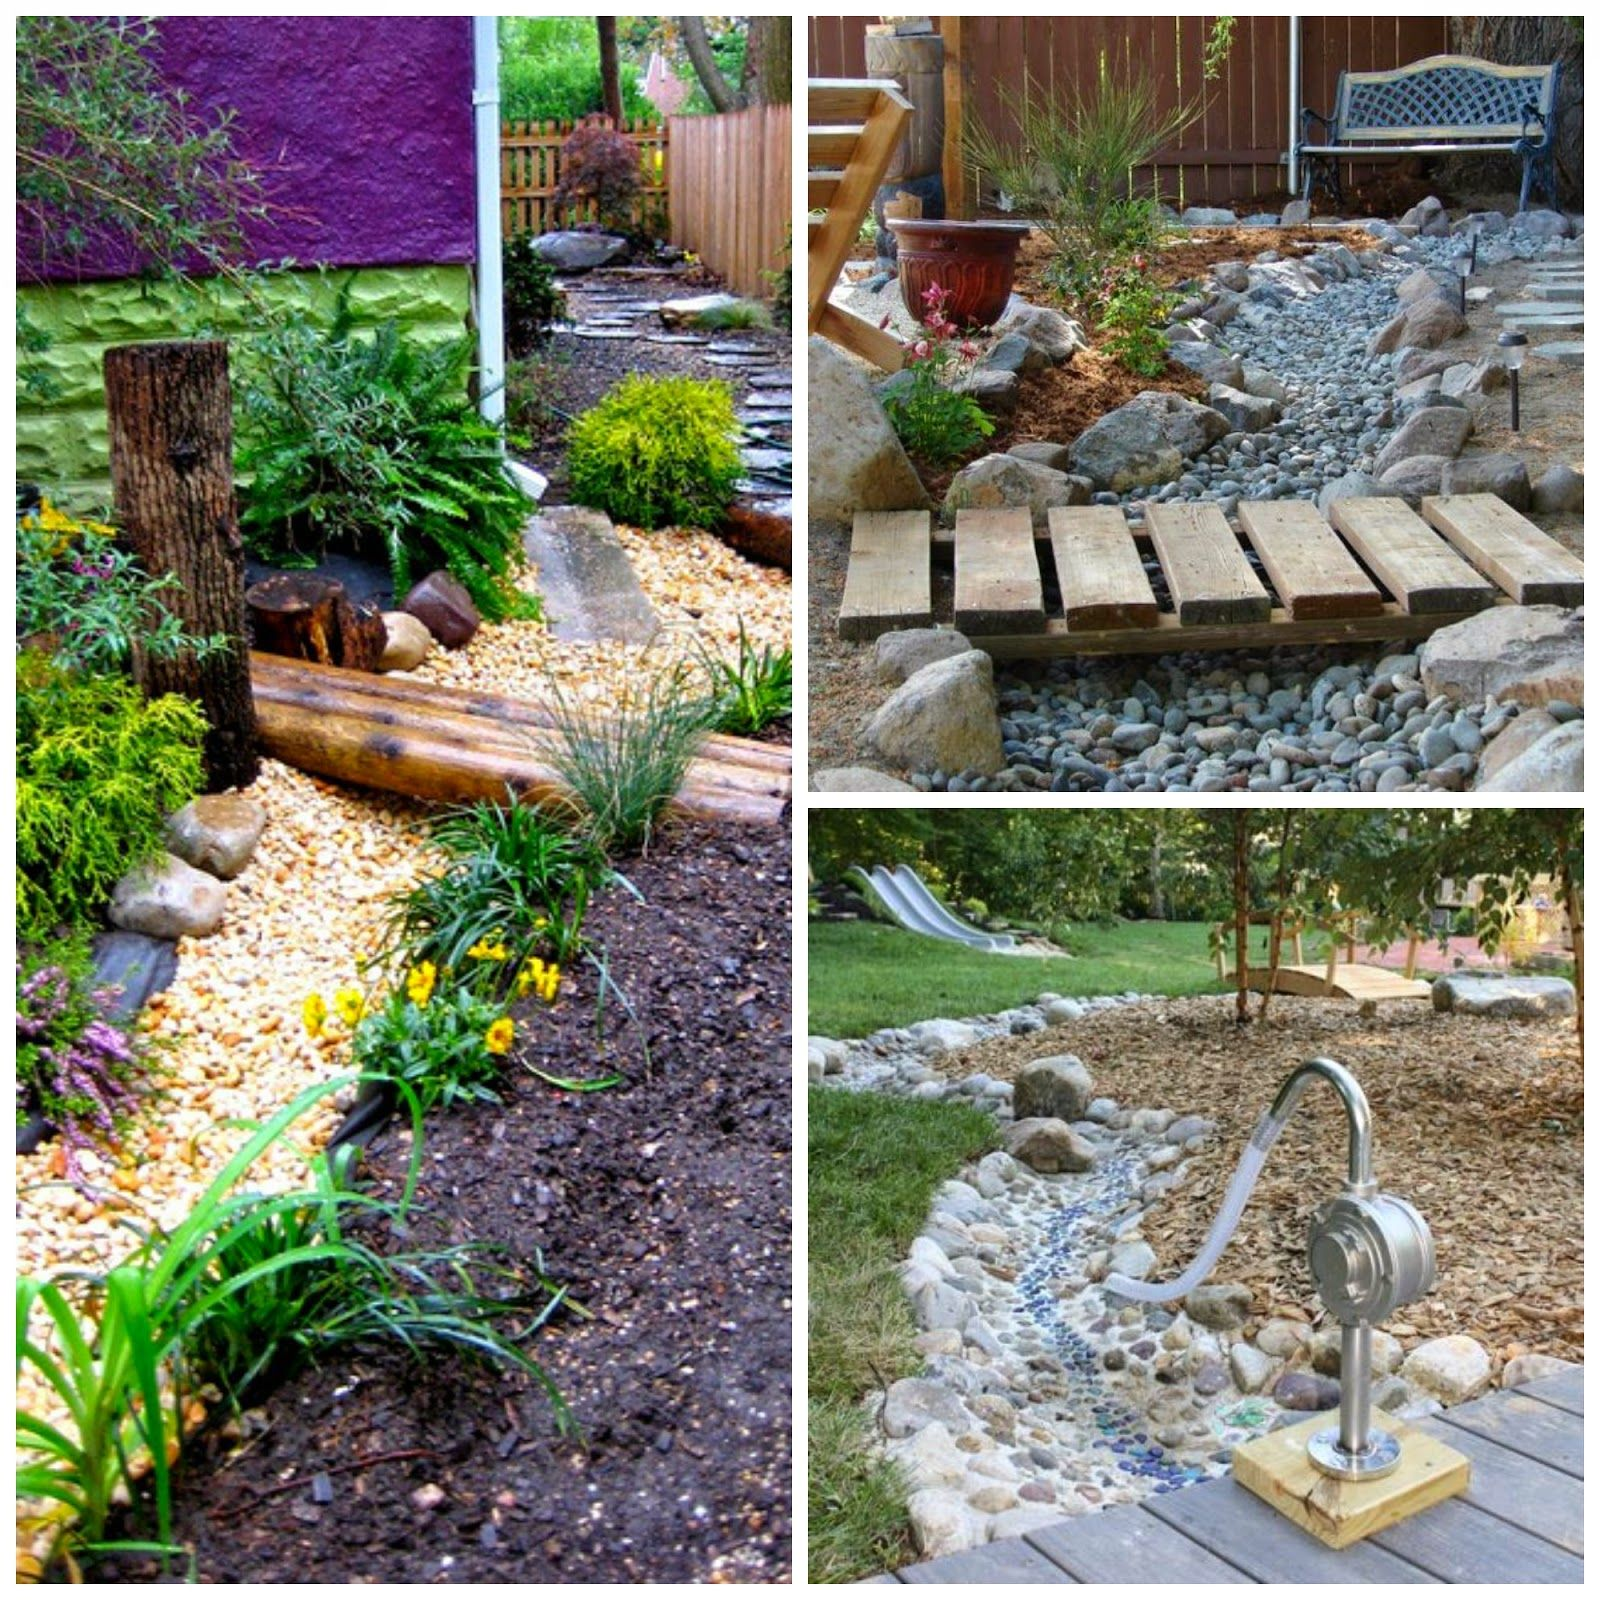 Pin by Stephanie Burns on Garden-Outside play | Outdoor ...